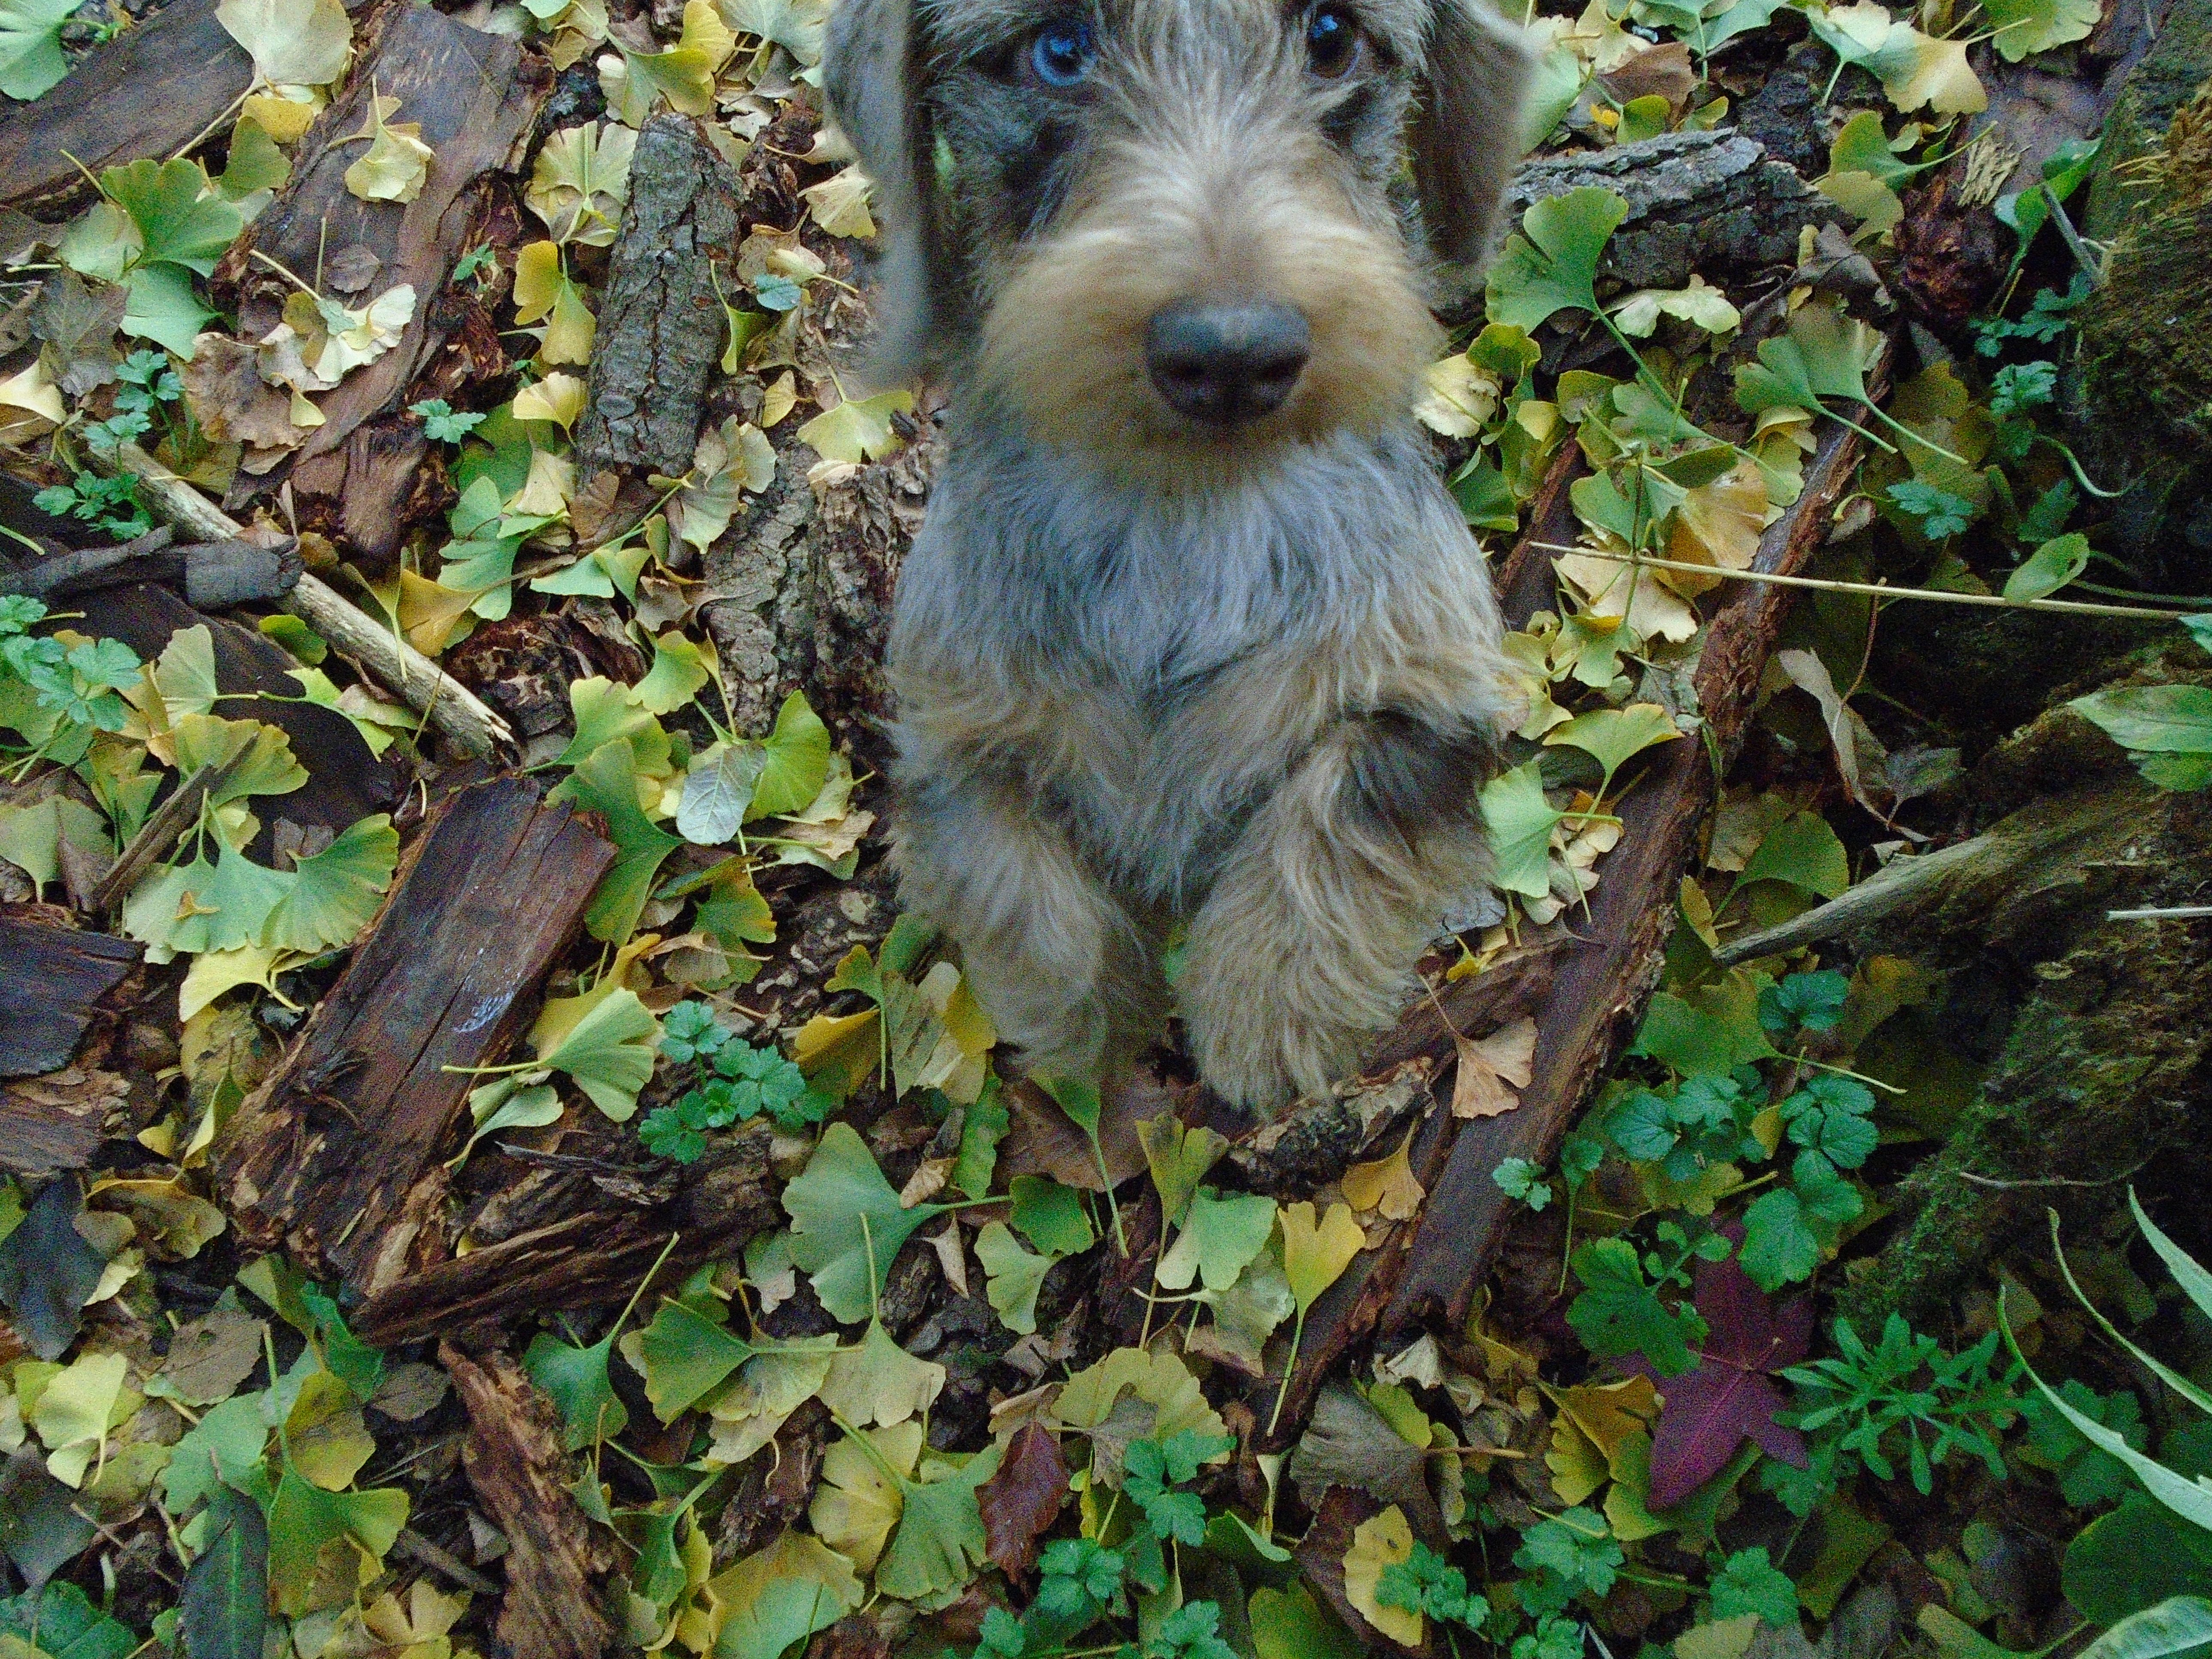 Irbis Our Rabbit Sized Wire Haired Dachshund Puppy From Russia